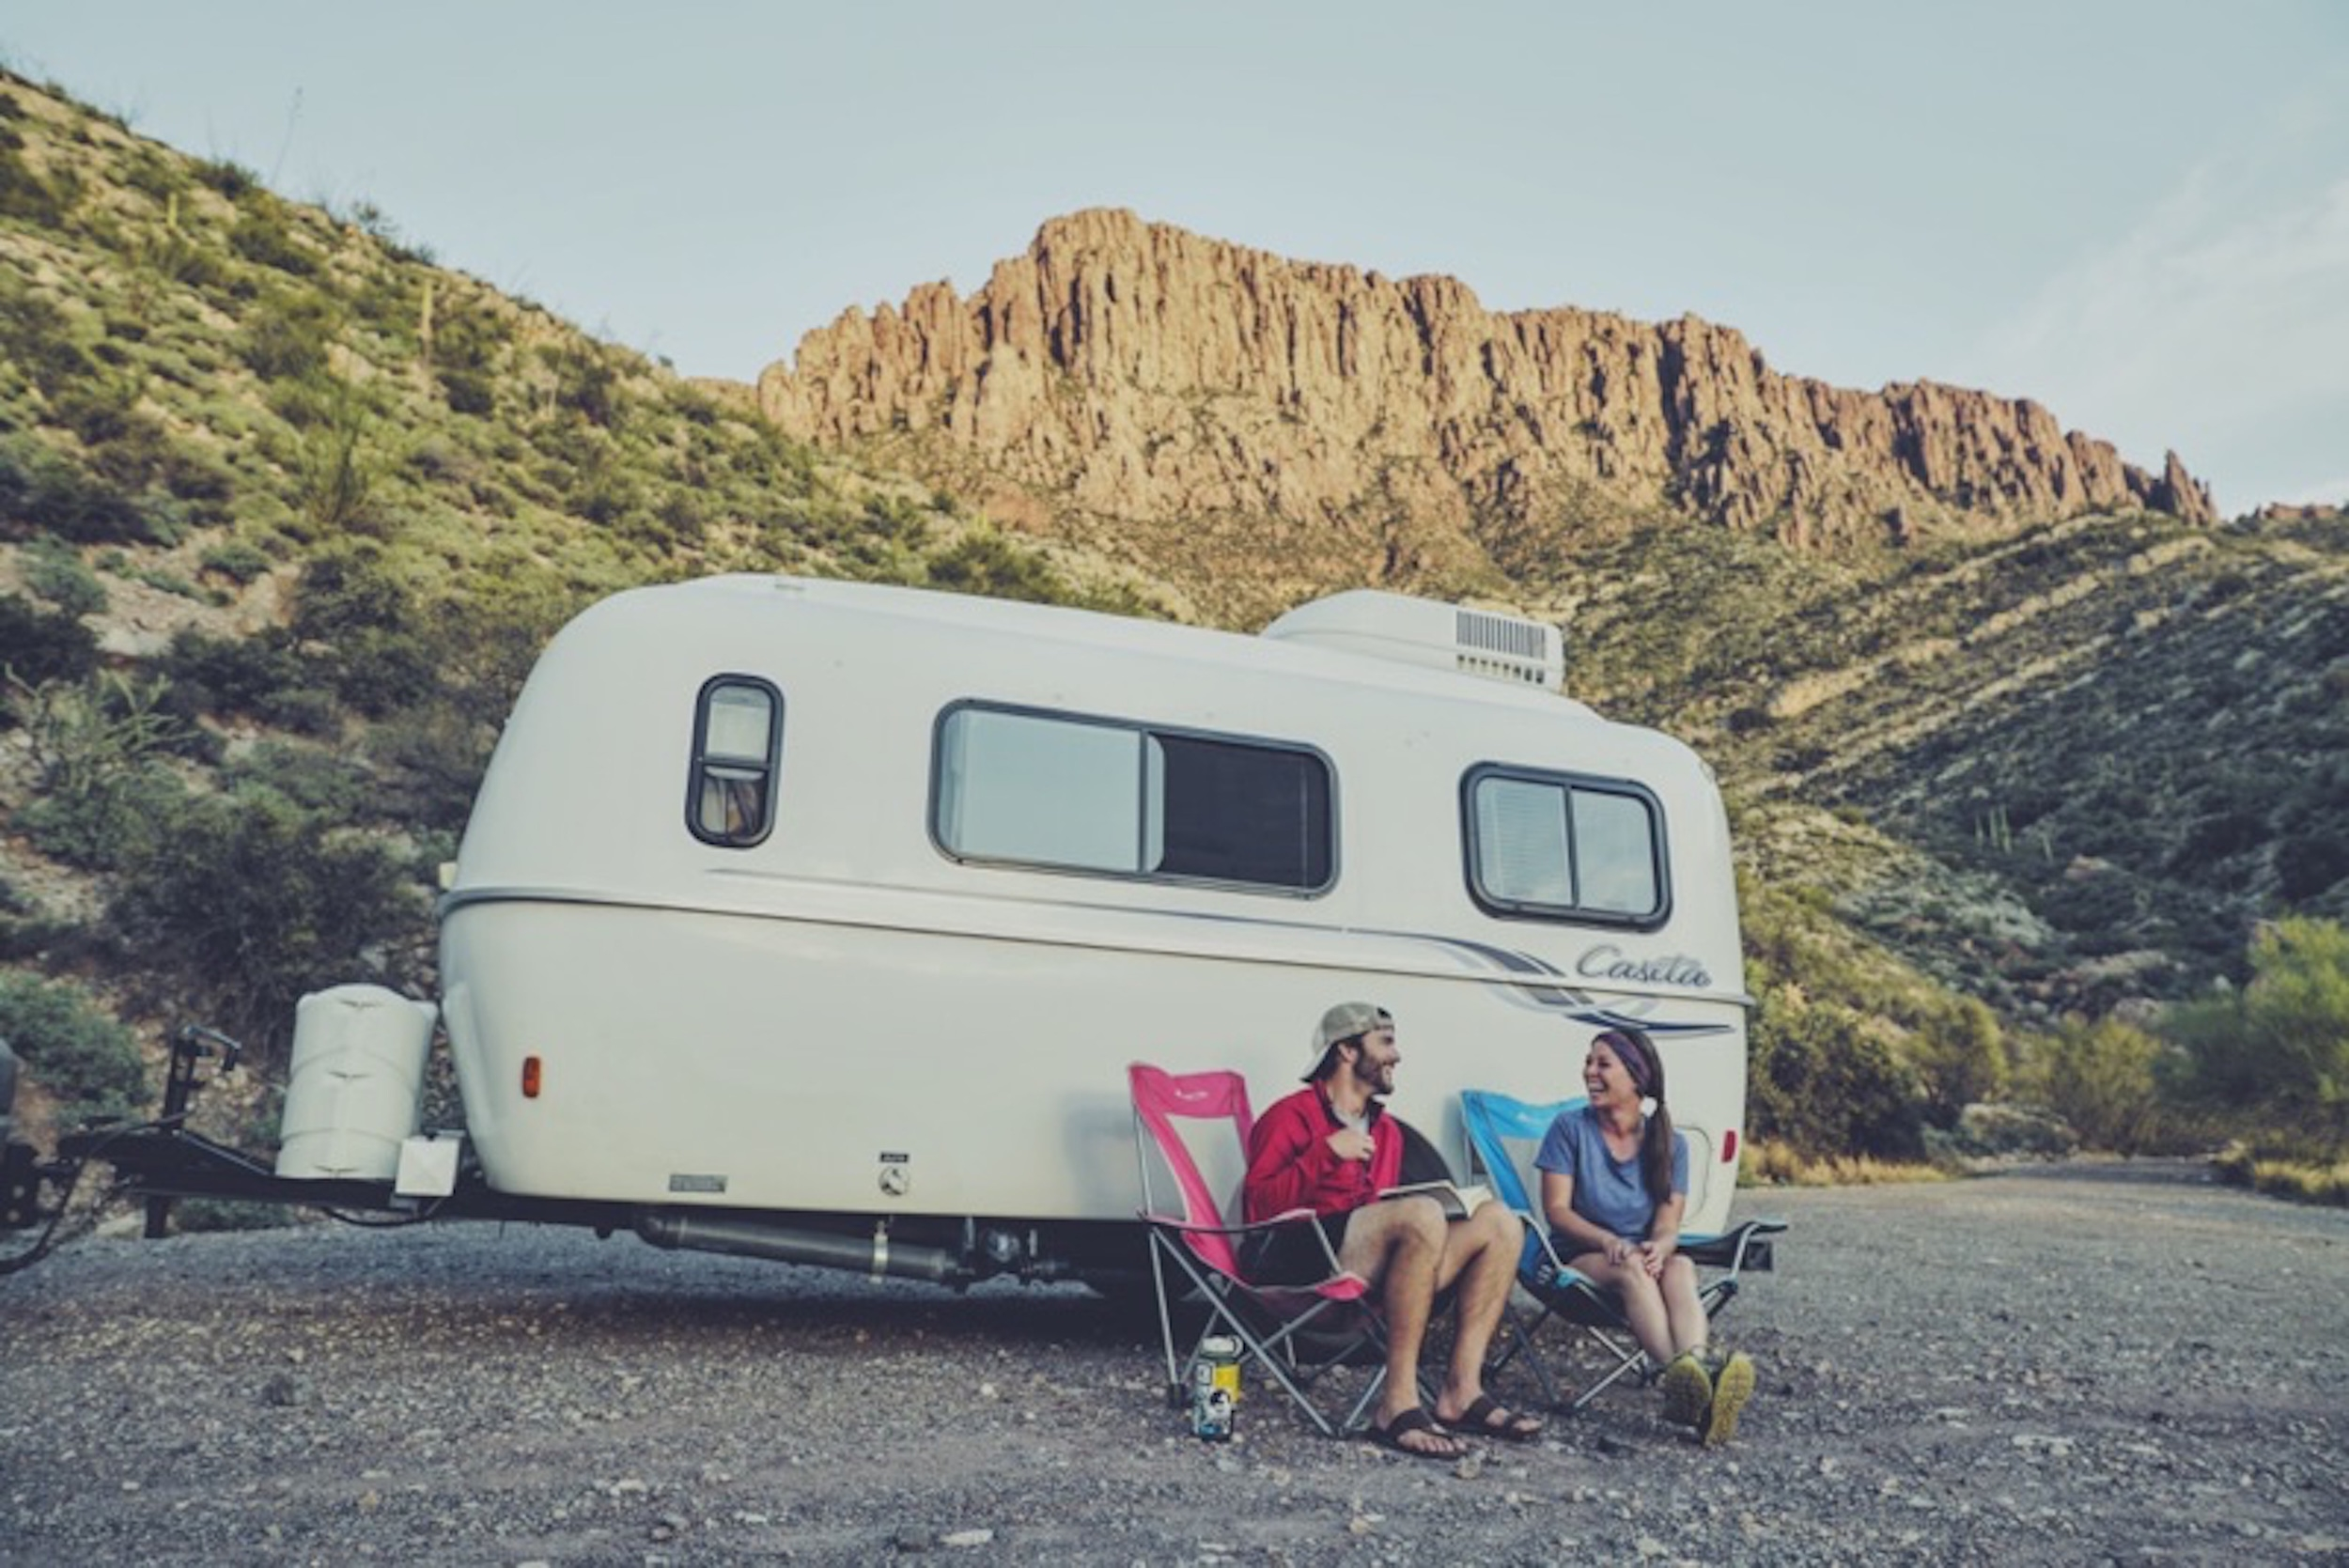 My wife, Lindsey, and I with our camper in Arizona. Photo credit: Charlie K Media